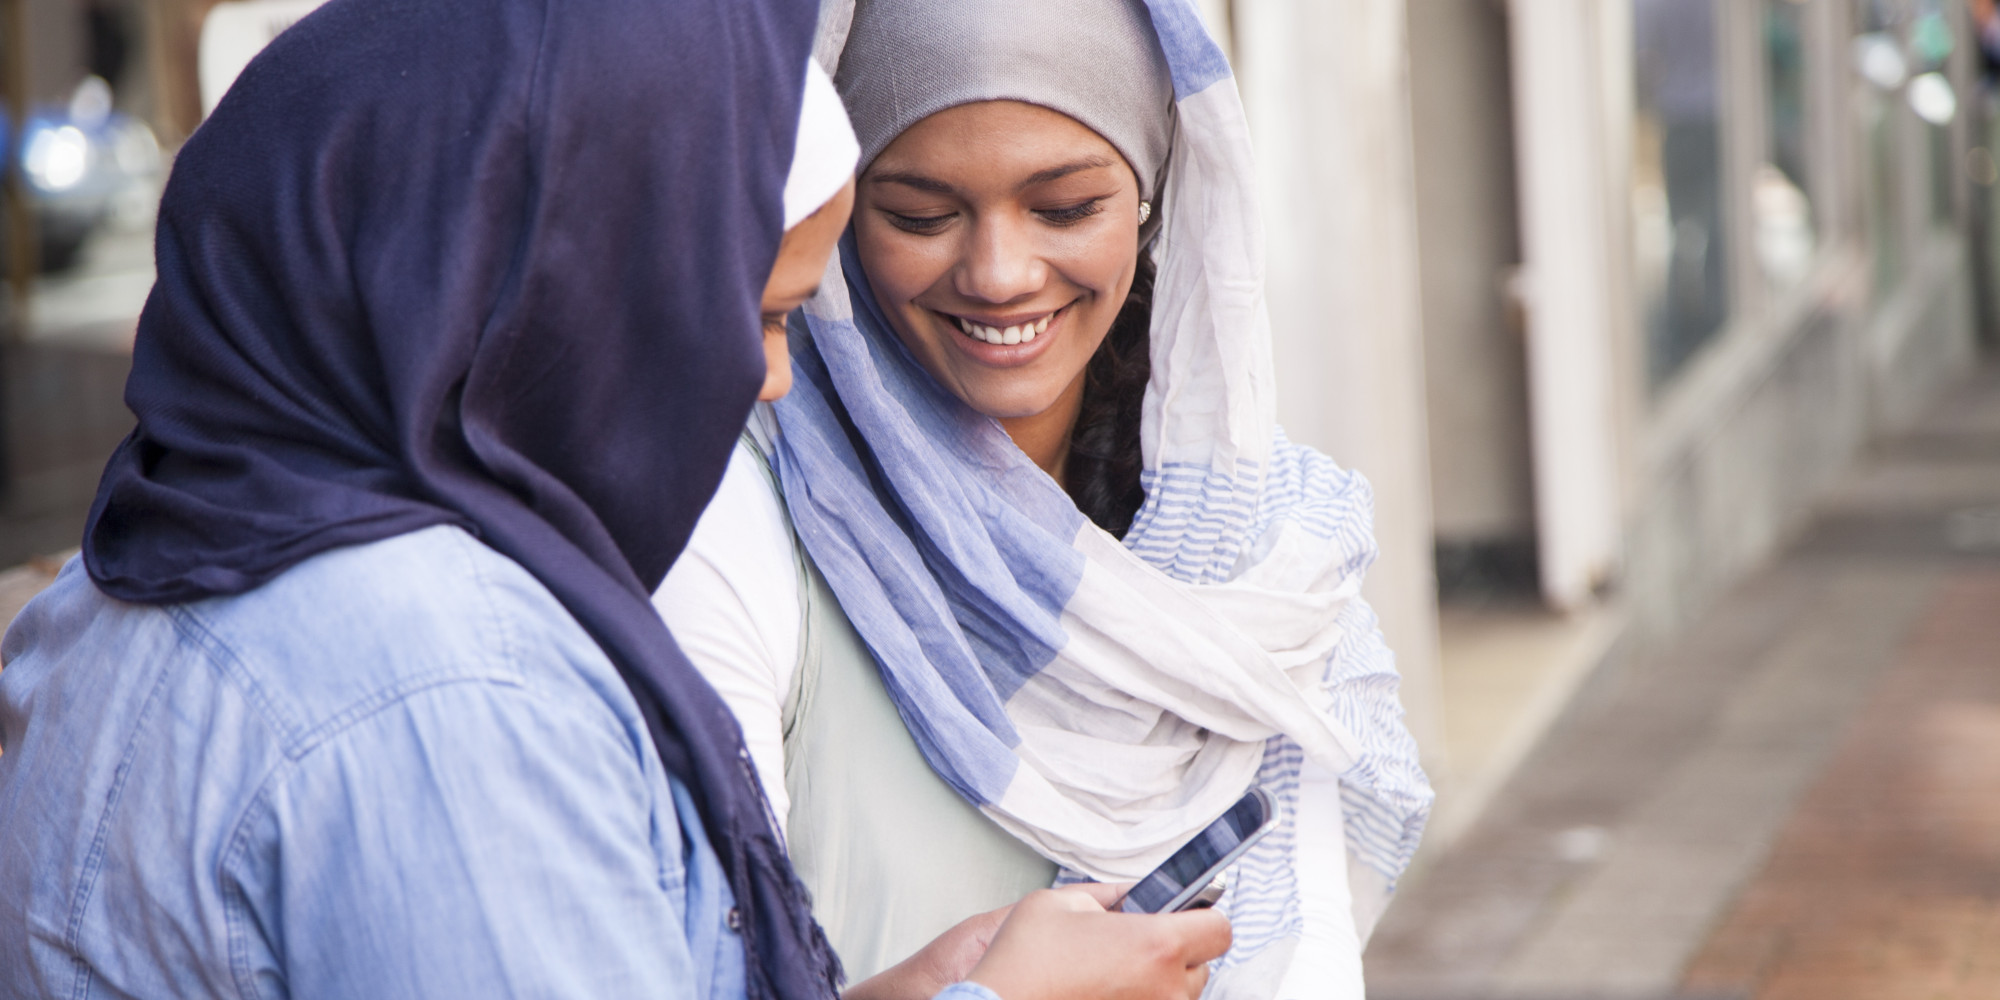 gaeta muslim girl personals That's what you can expect when you date a muslim girl who carries her culture with her what men don't get about dating muslim women.